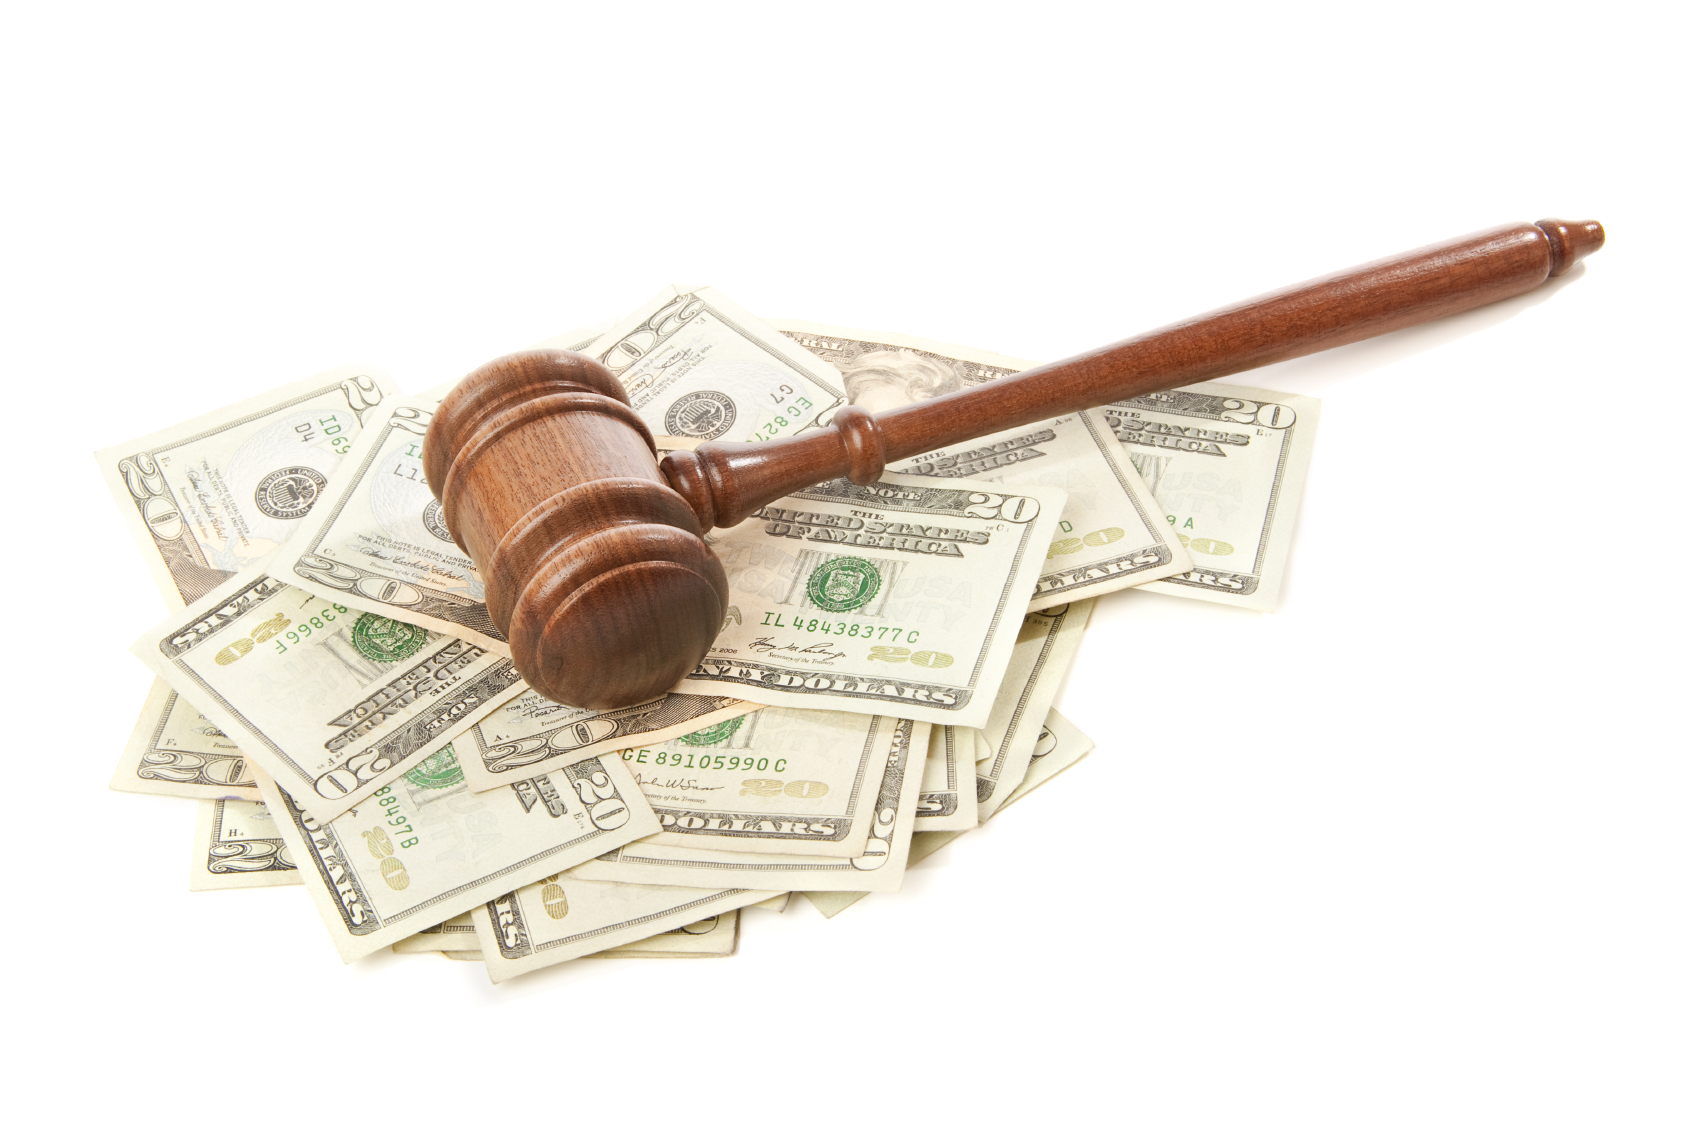 Gavel laying on top of money isolated. (tock image)